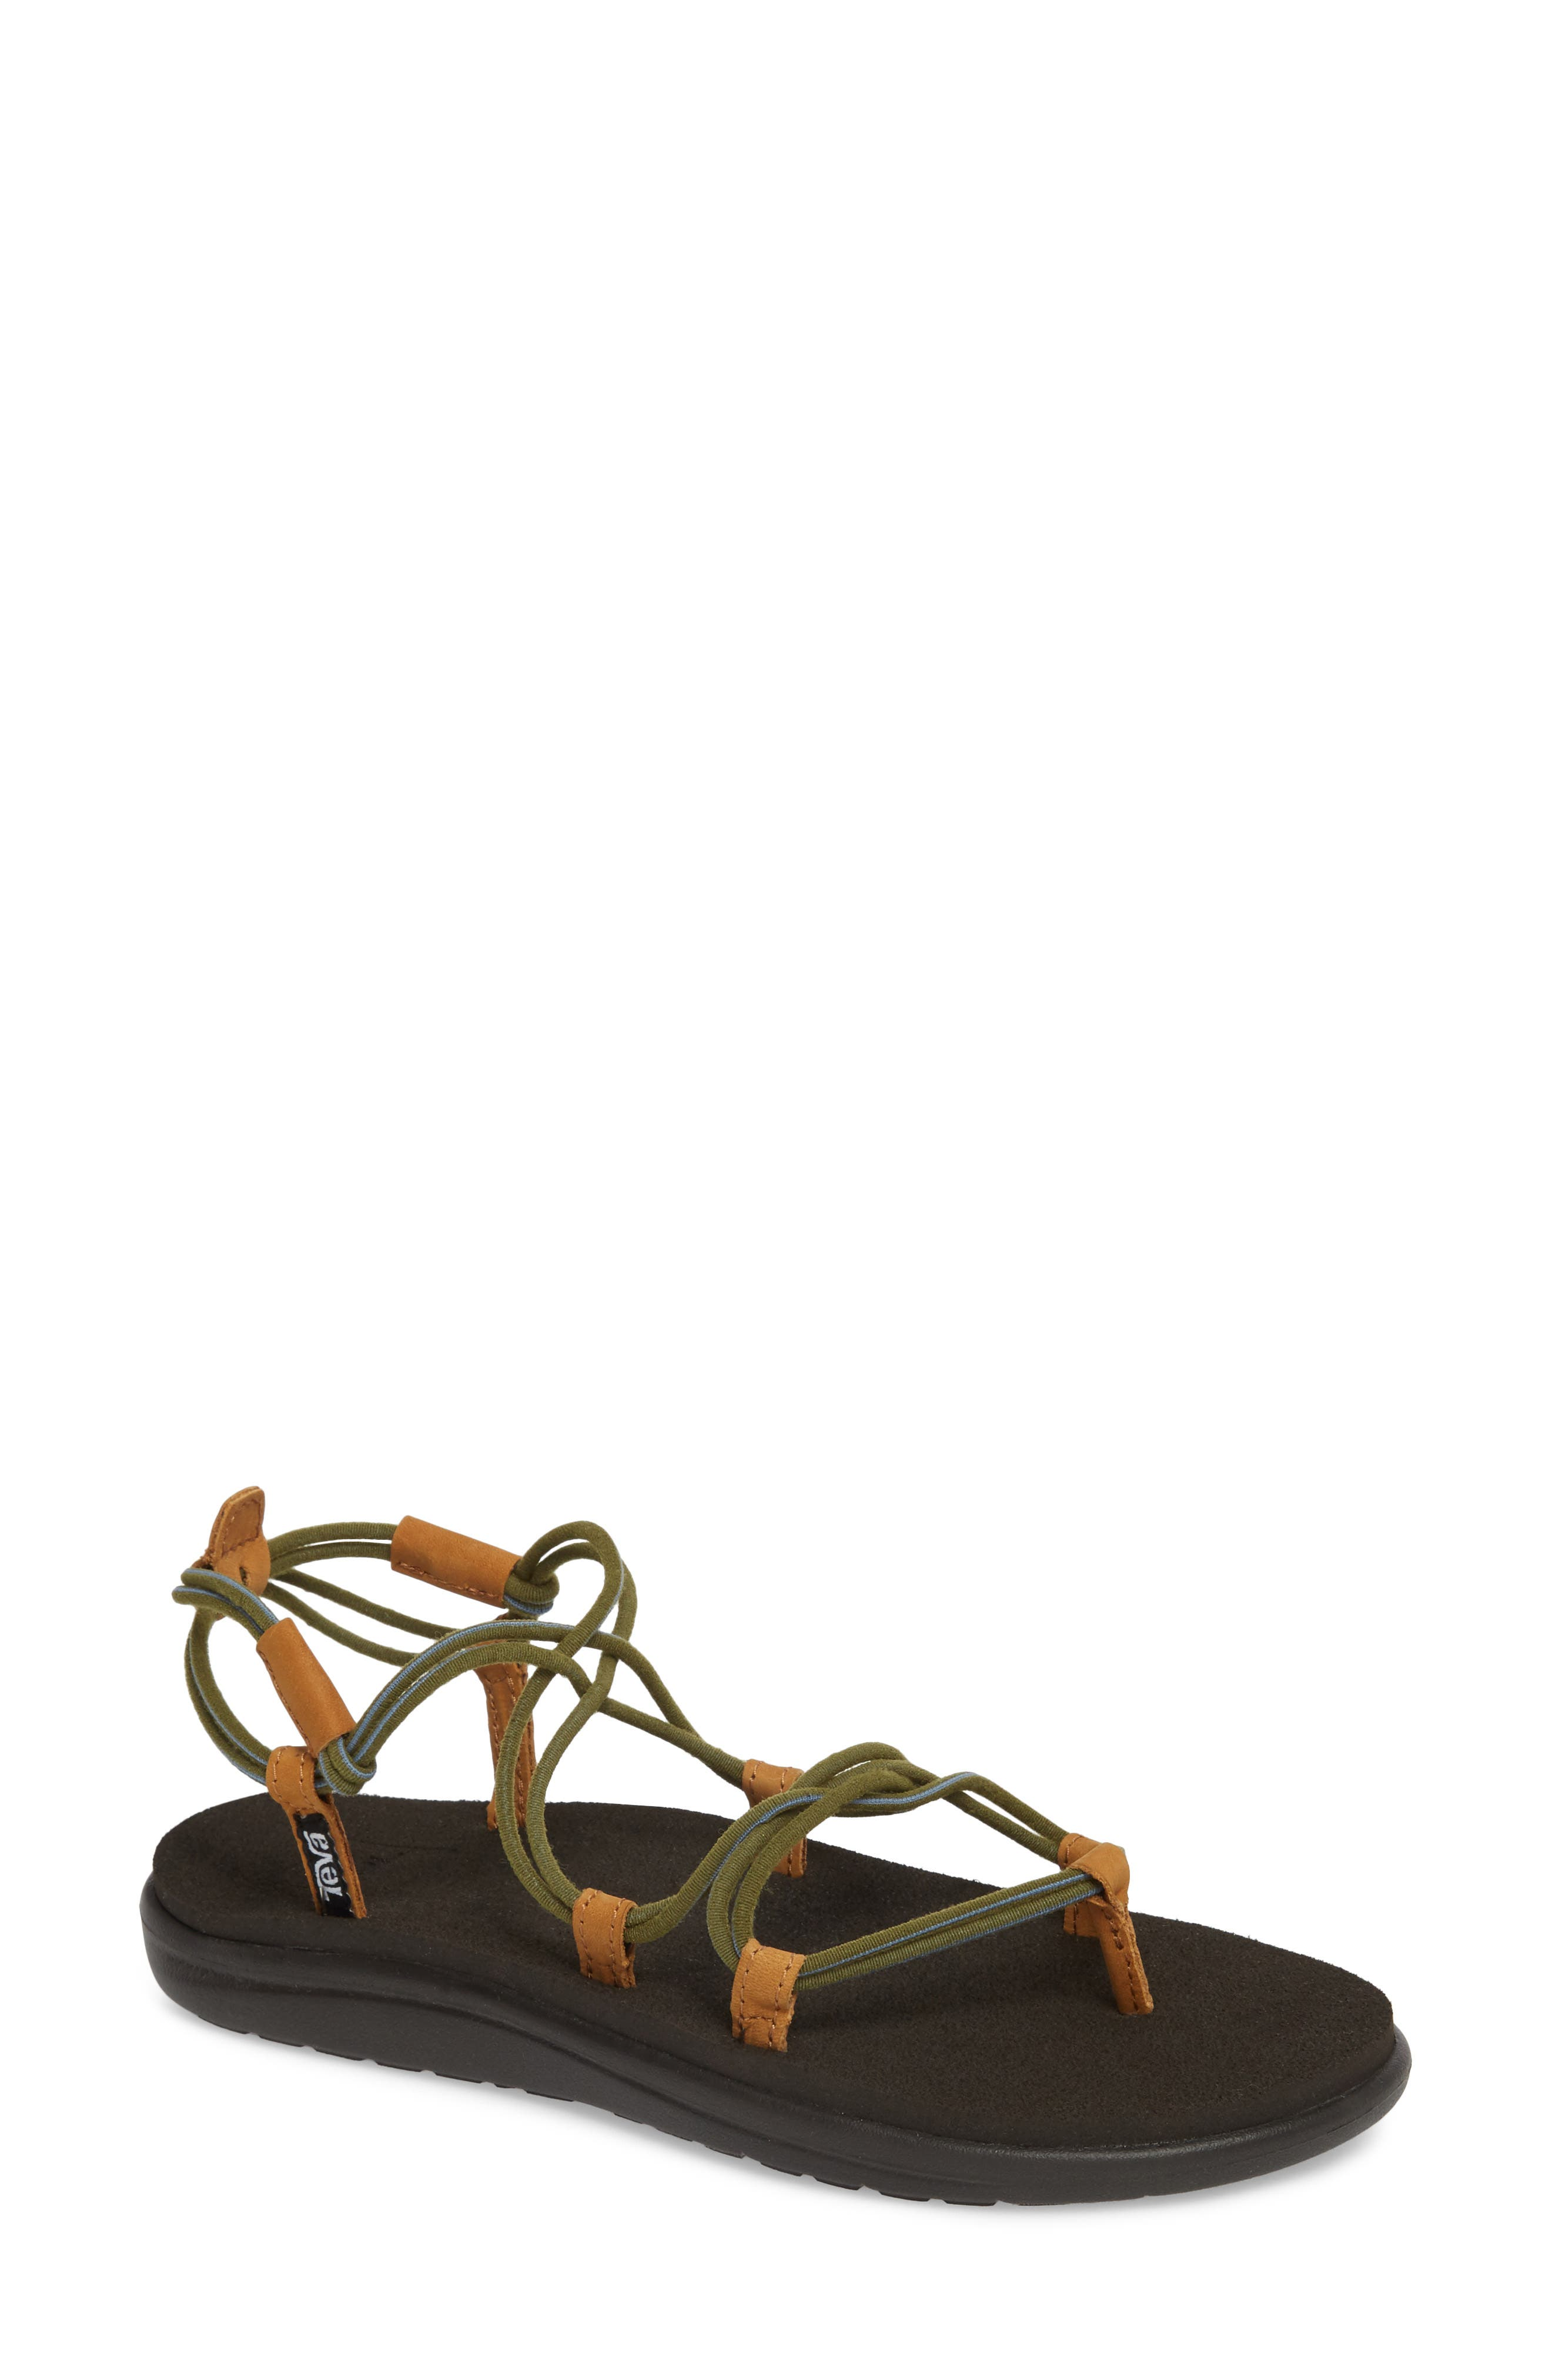 73583c854e8a th a single piece of lightweight webbing. Style Name  Teva Voya Infinity  Sandal (Women). Style Number  5527155. Available in stores.